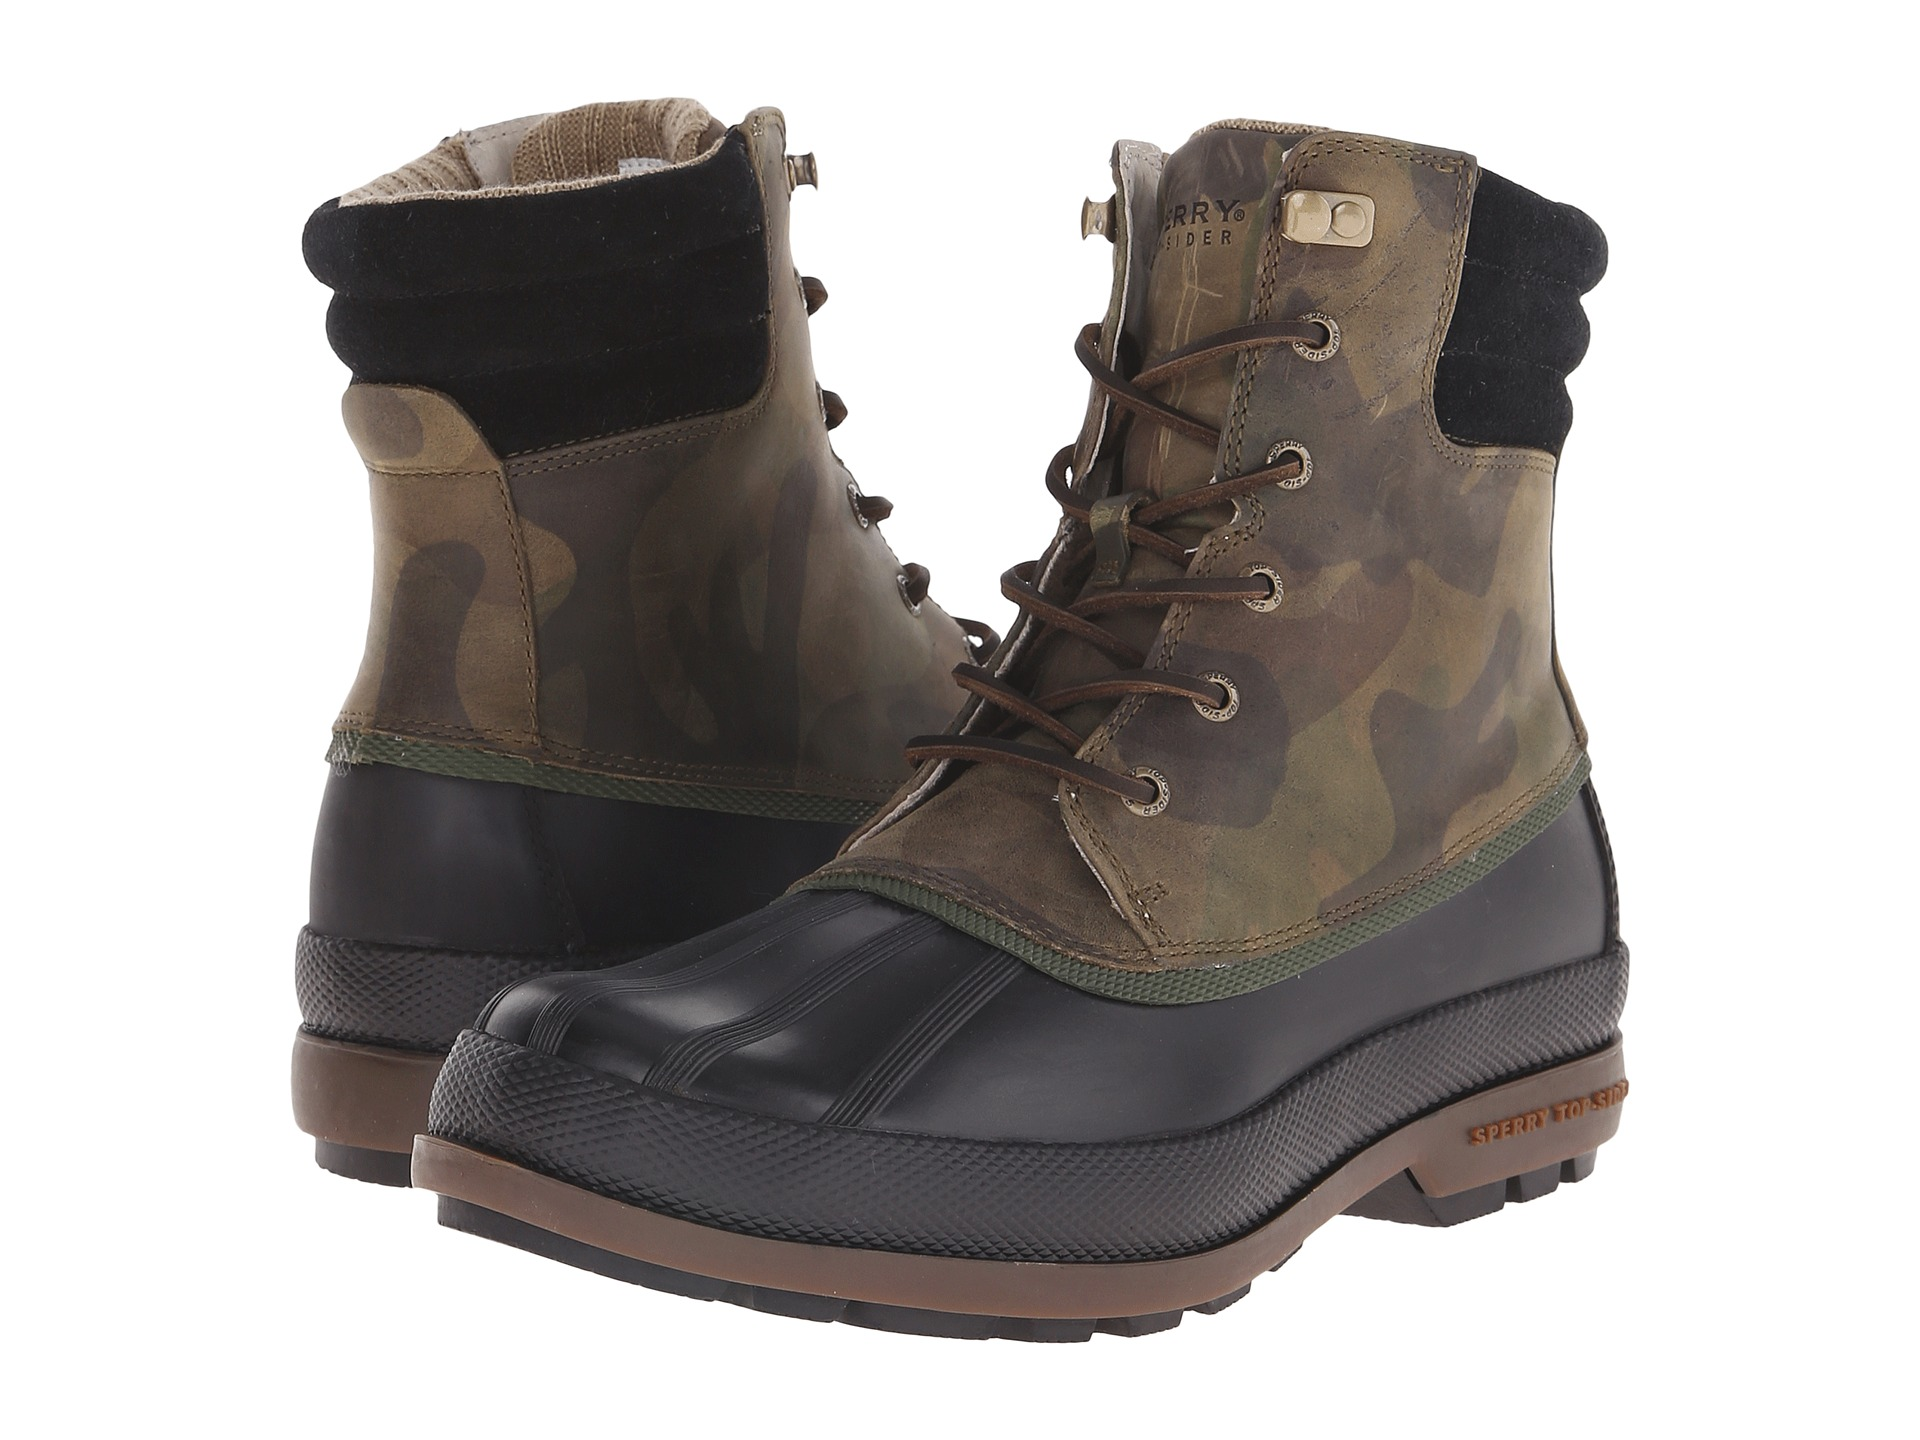 sperry top sider cold bay boot zappos free shipping